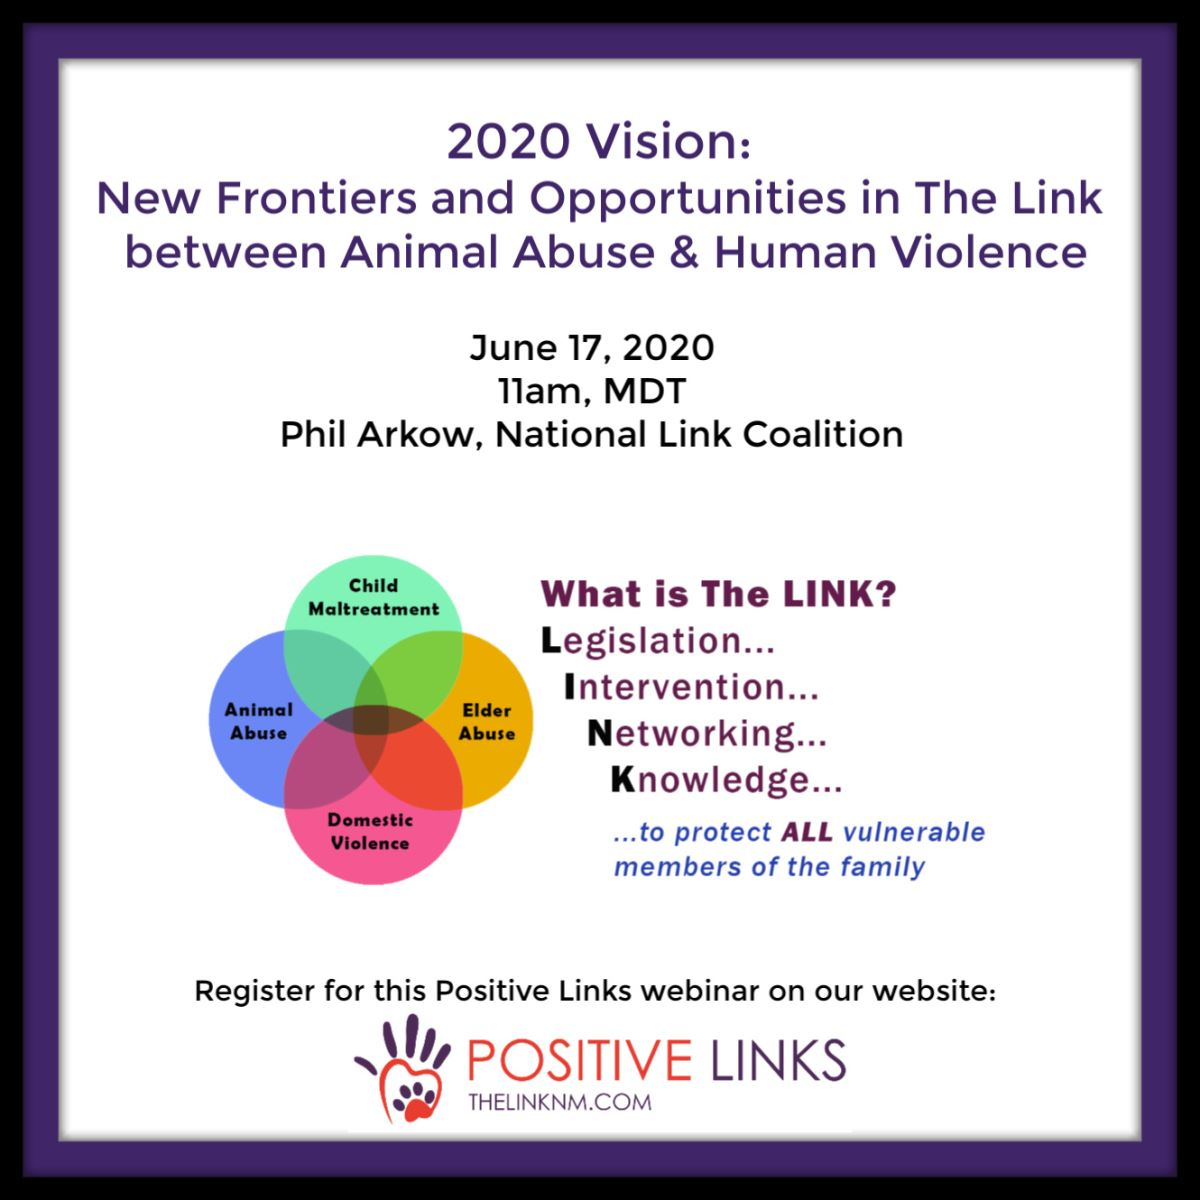 2020 Vision: New Frontiers and Opportunities in The Link between Animal Abuse & Human Violence June 17, 2020 11am, MDT Phil Arkow, National Link Coalition What is the LINK? Legislation, Intervention, Networking, Knowledge, to protect ALL vulnerable members of the family Register for this Positive Links webinar on our website